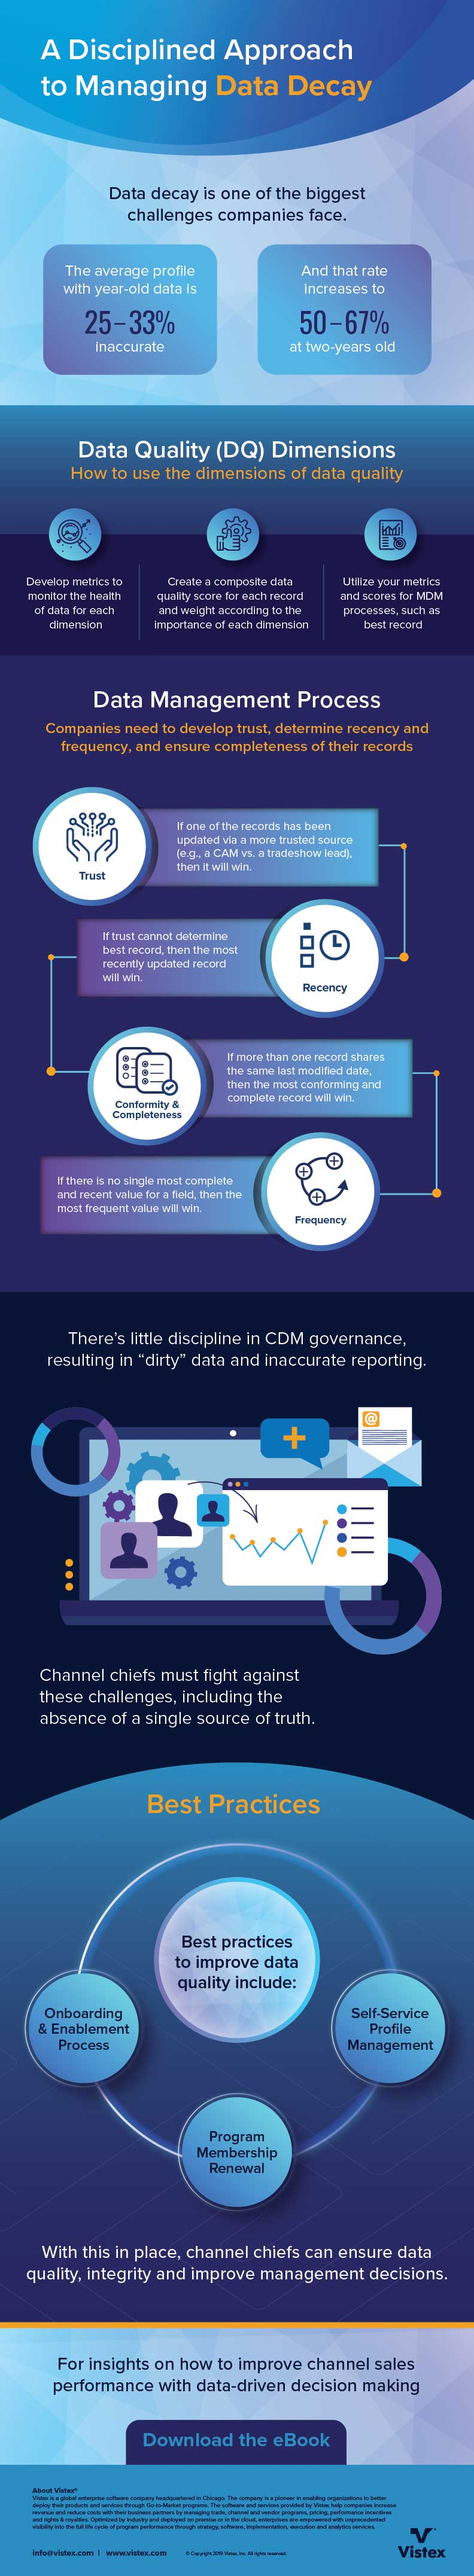 Managing Data Decay Infographic